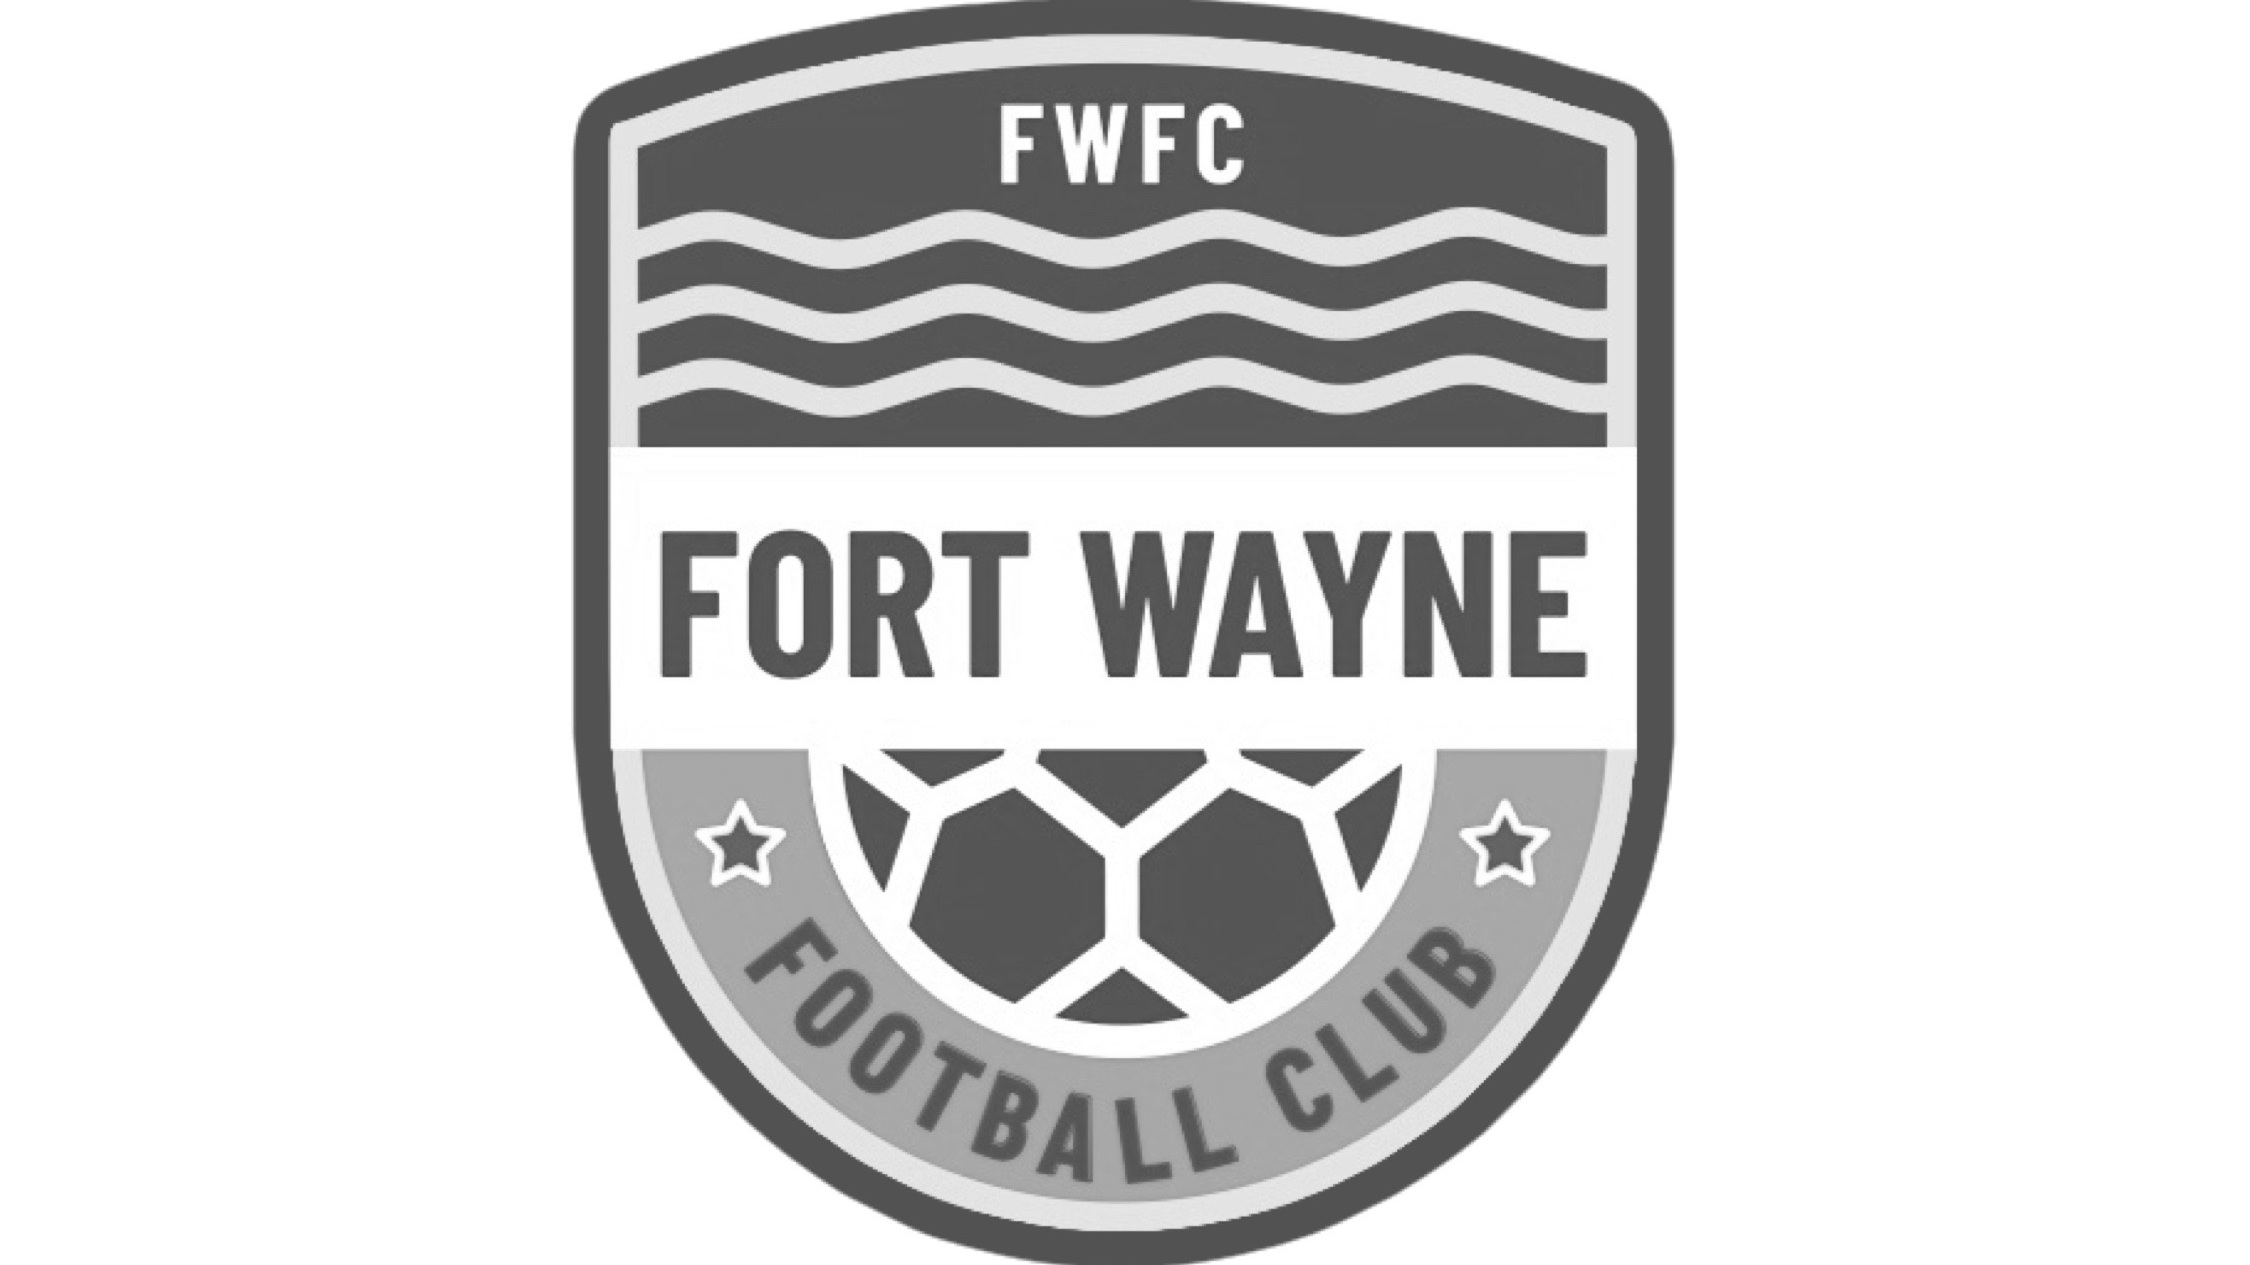 TBD - Merchandise Retail ManagerManages local retail opportunities. Negotiates with local retailers to carry Fort Wayne FC merchandise.